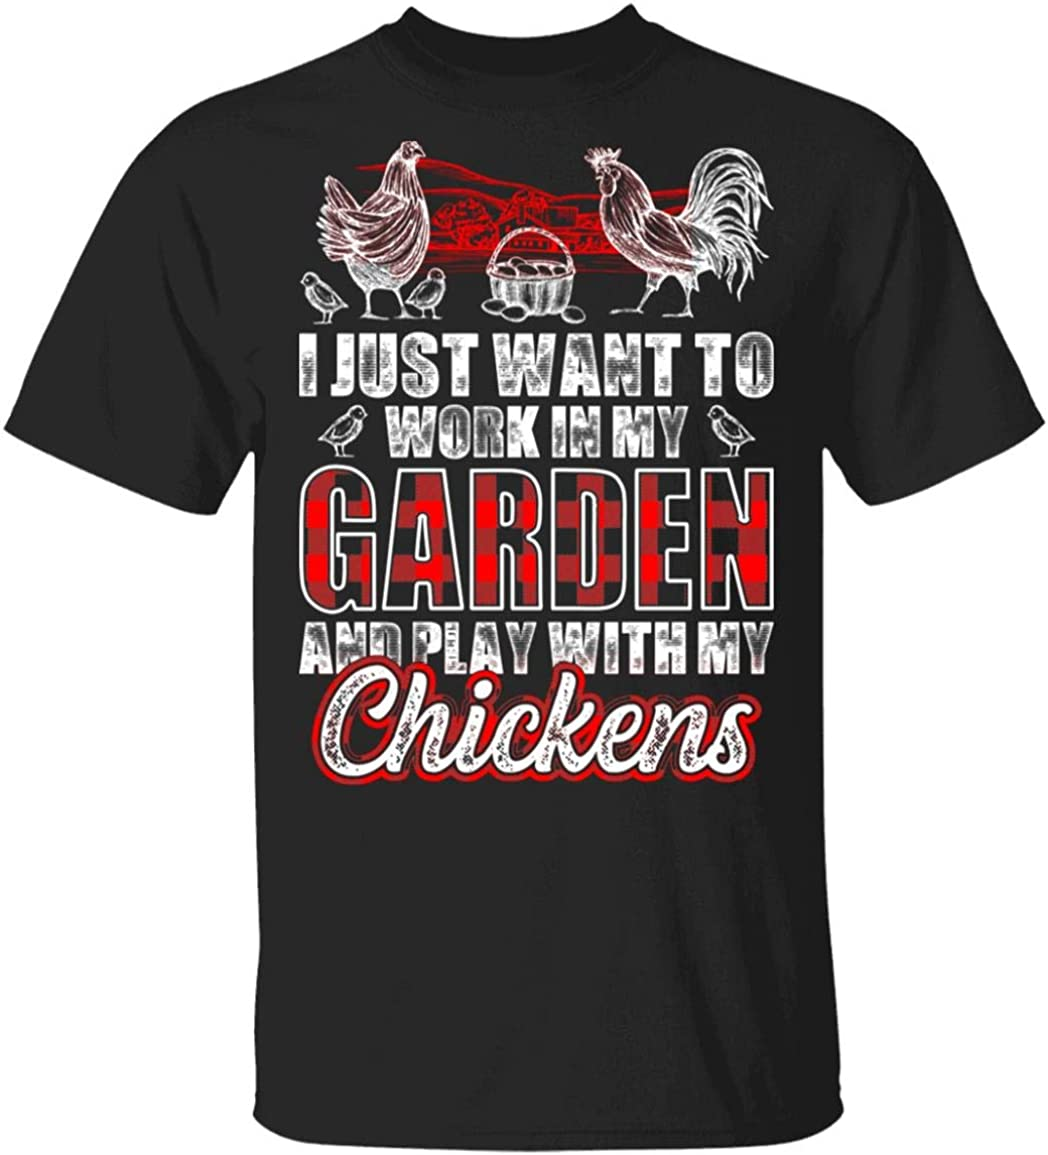 I Just Want to Work in My Garden and Play with My Chickens - Chicker Keeper T-Shirt